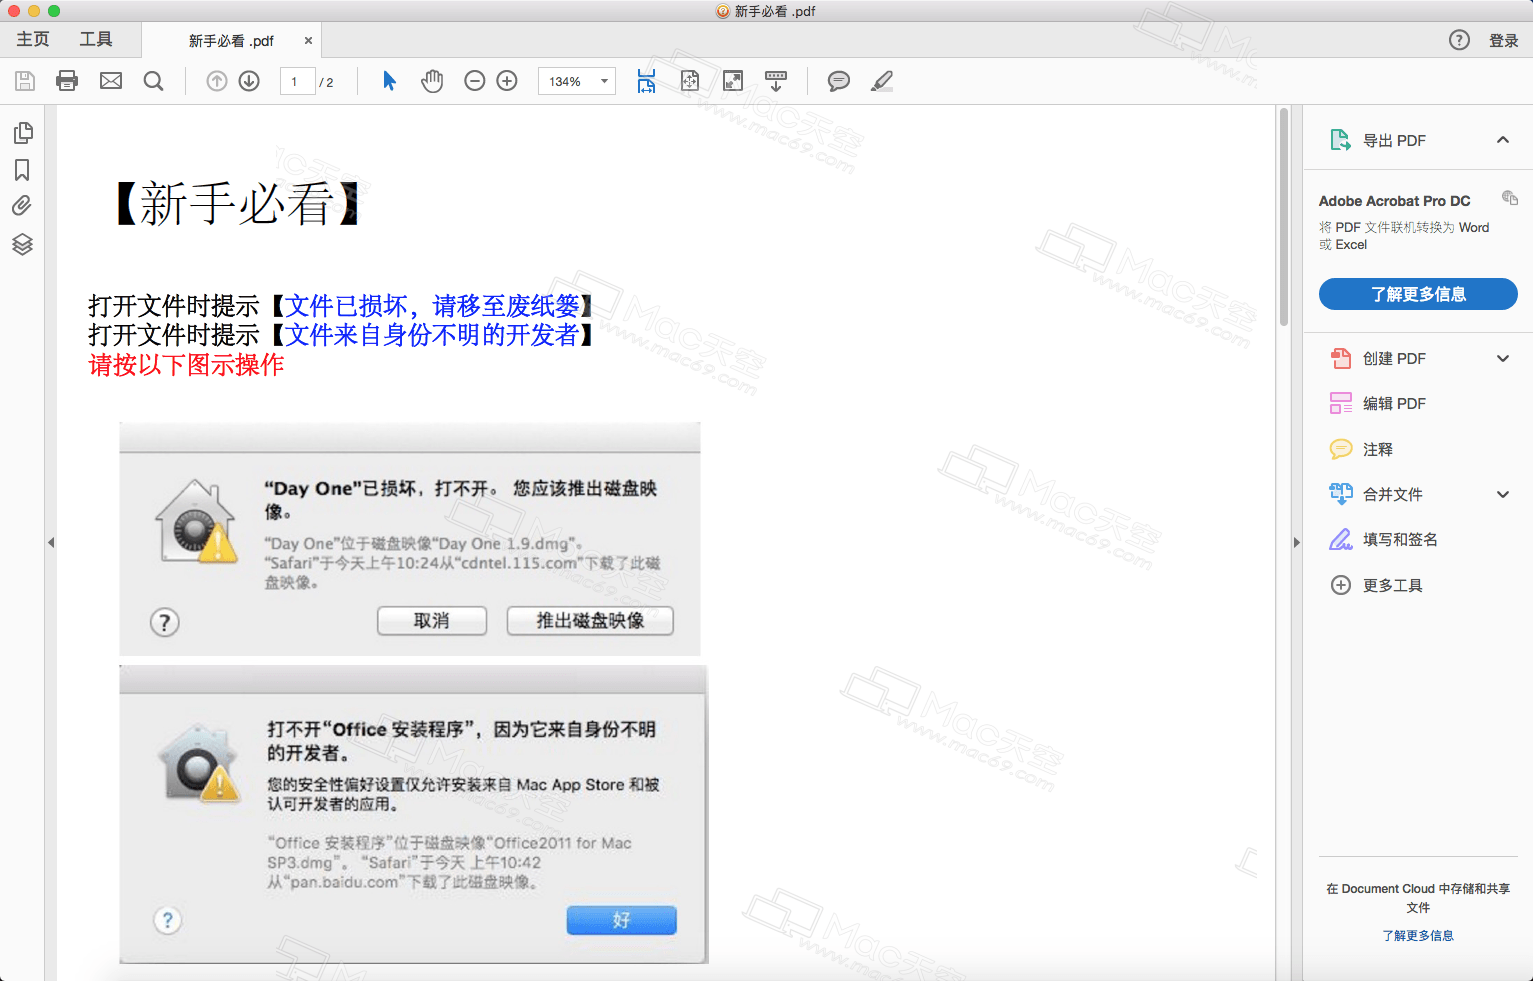 Adobe Acrobat Reader DC 2019 for Mac (PDF Reader) Chinese